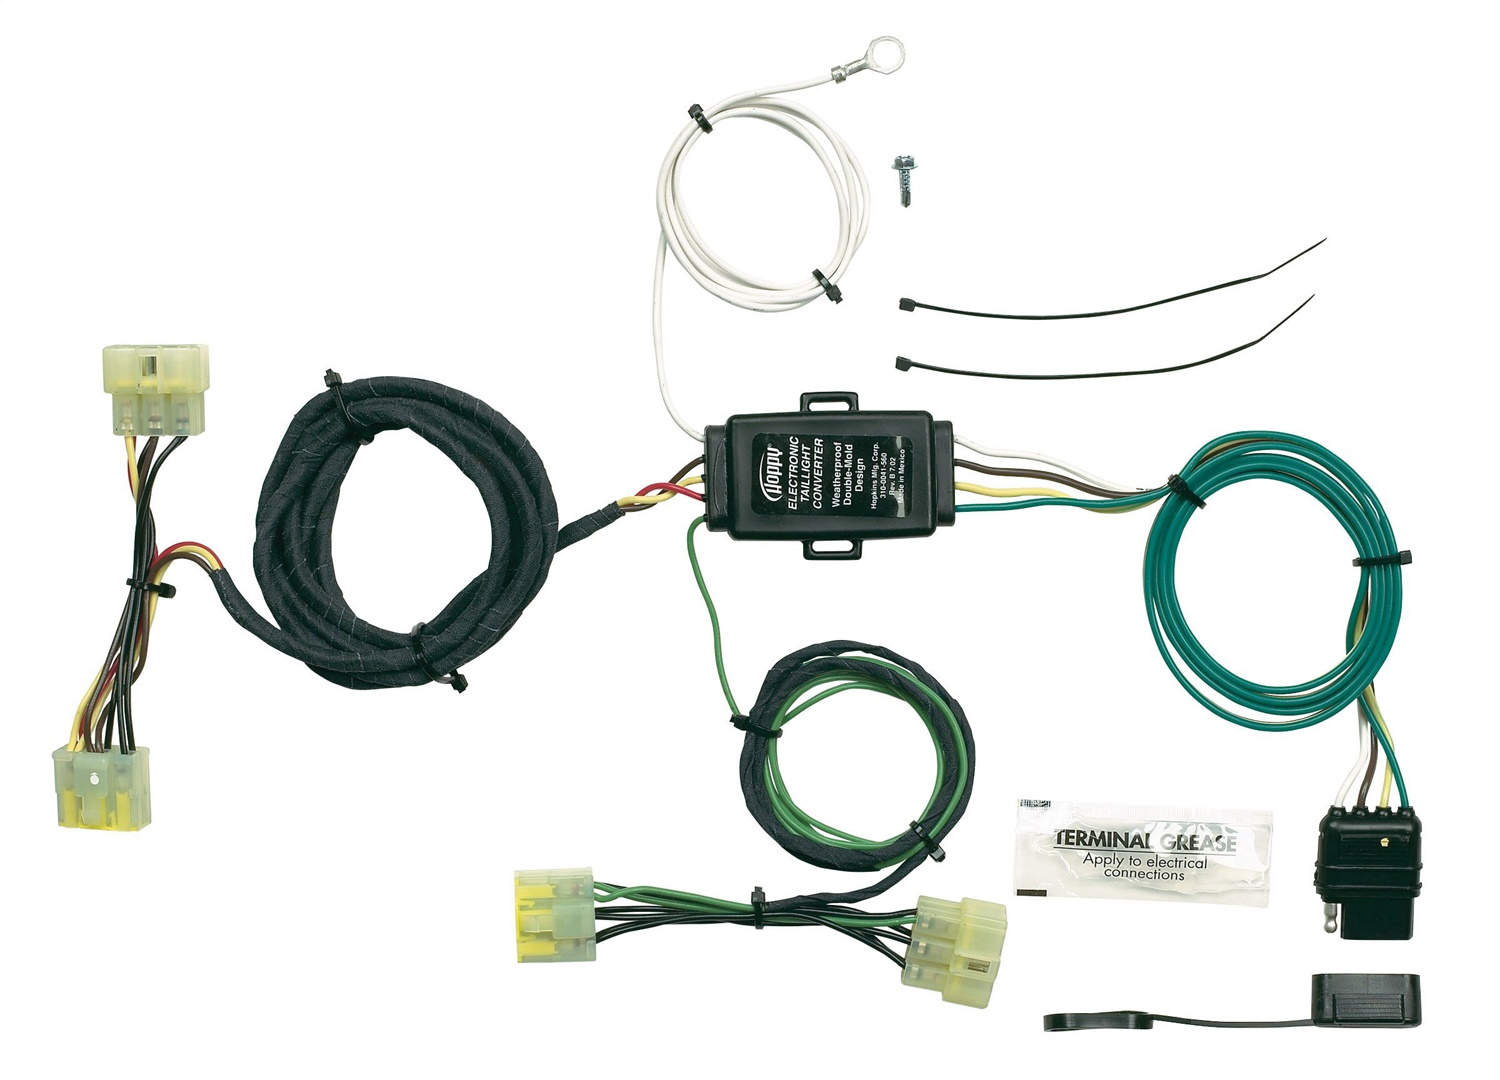 hight resolution of details about hopkins towing solution 43315 plug in simple vehicle to trailer wiring harness